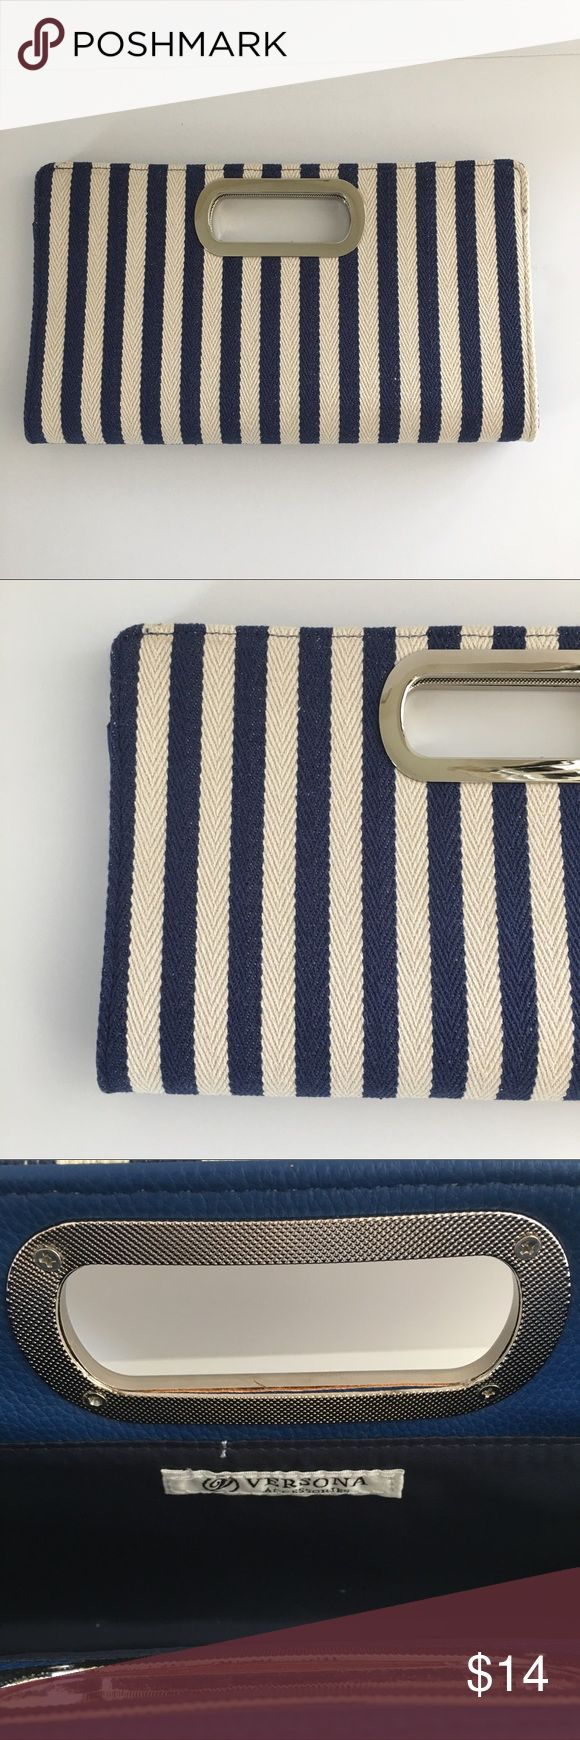 Versona Navy and Tan Striped Clutch. Silver Handle Versona Accessories Classic Navy and Cream Striped Clutch. Excellent pre-owned condition. Versona Bags Clutches & Wristlets